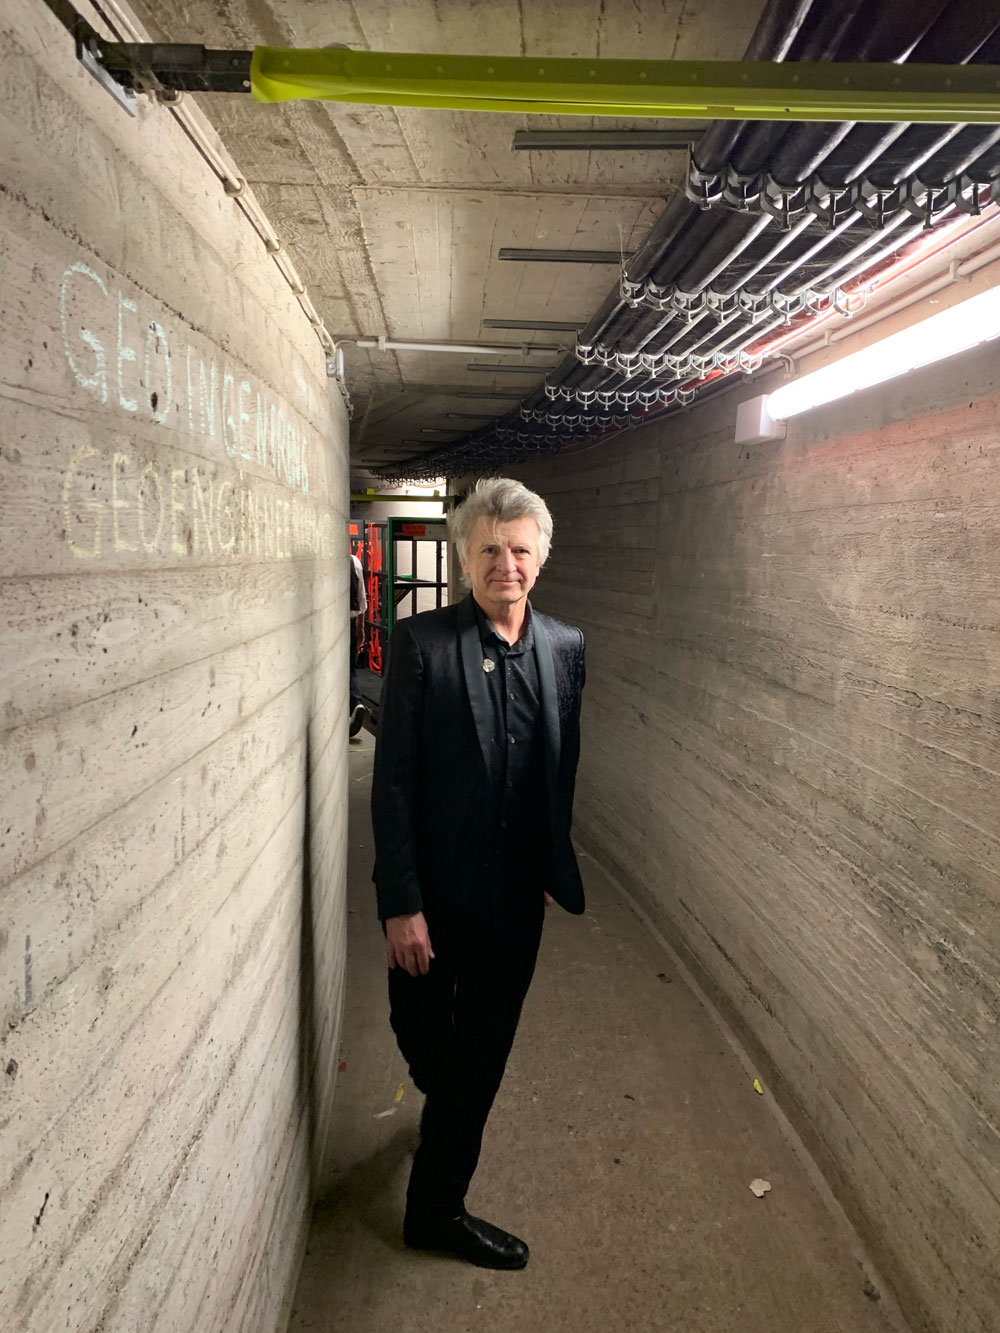 Neil-backstage in Berlin.jpg